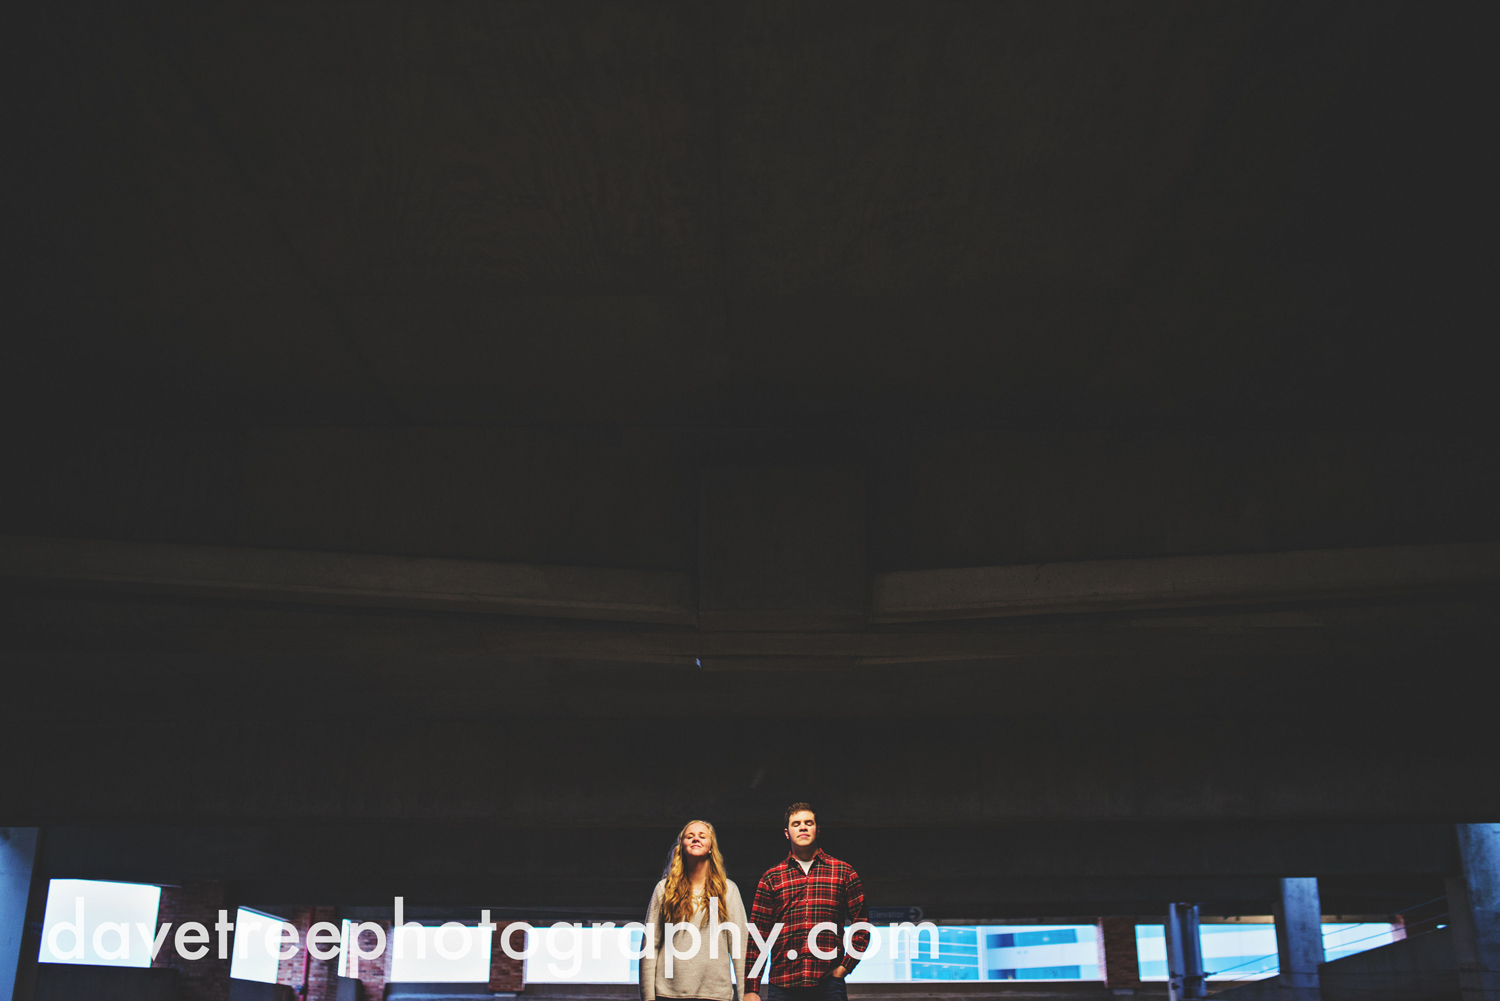 kalamazoo_engagement_photographer_324.jpg